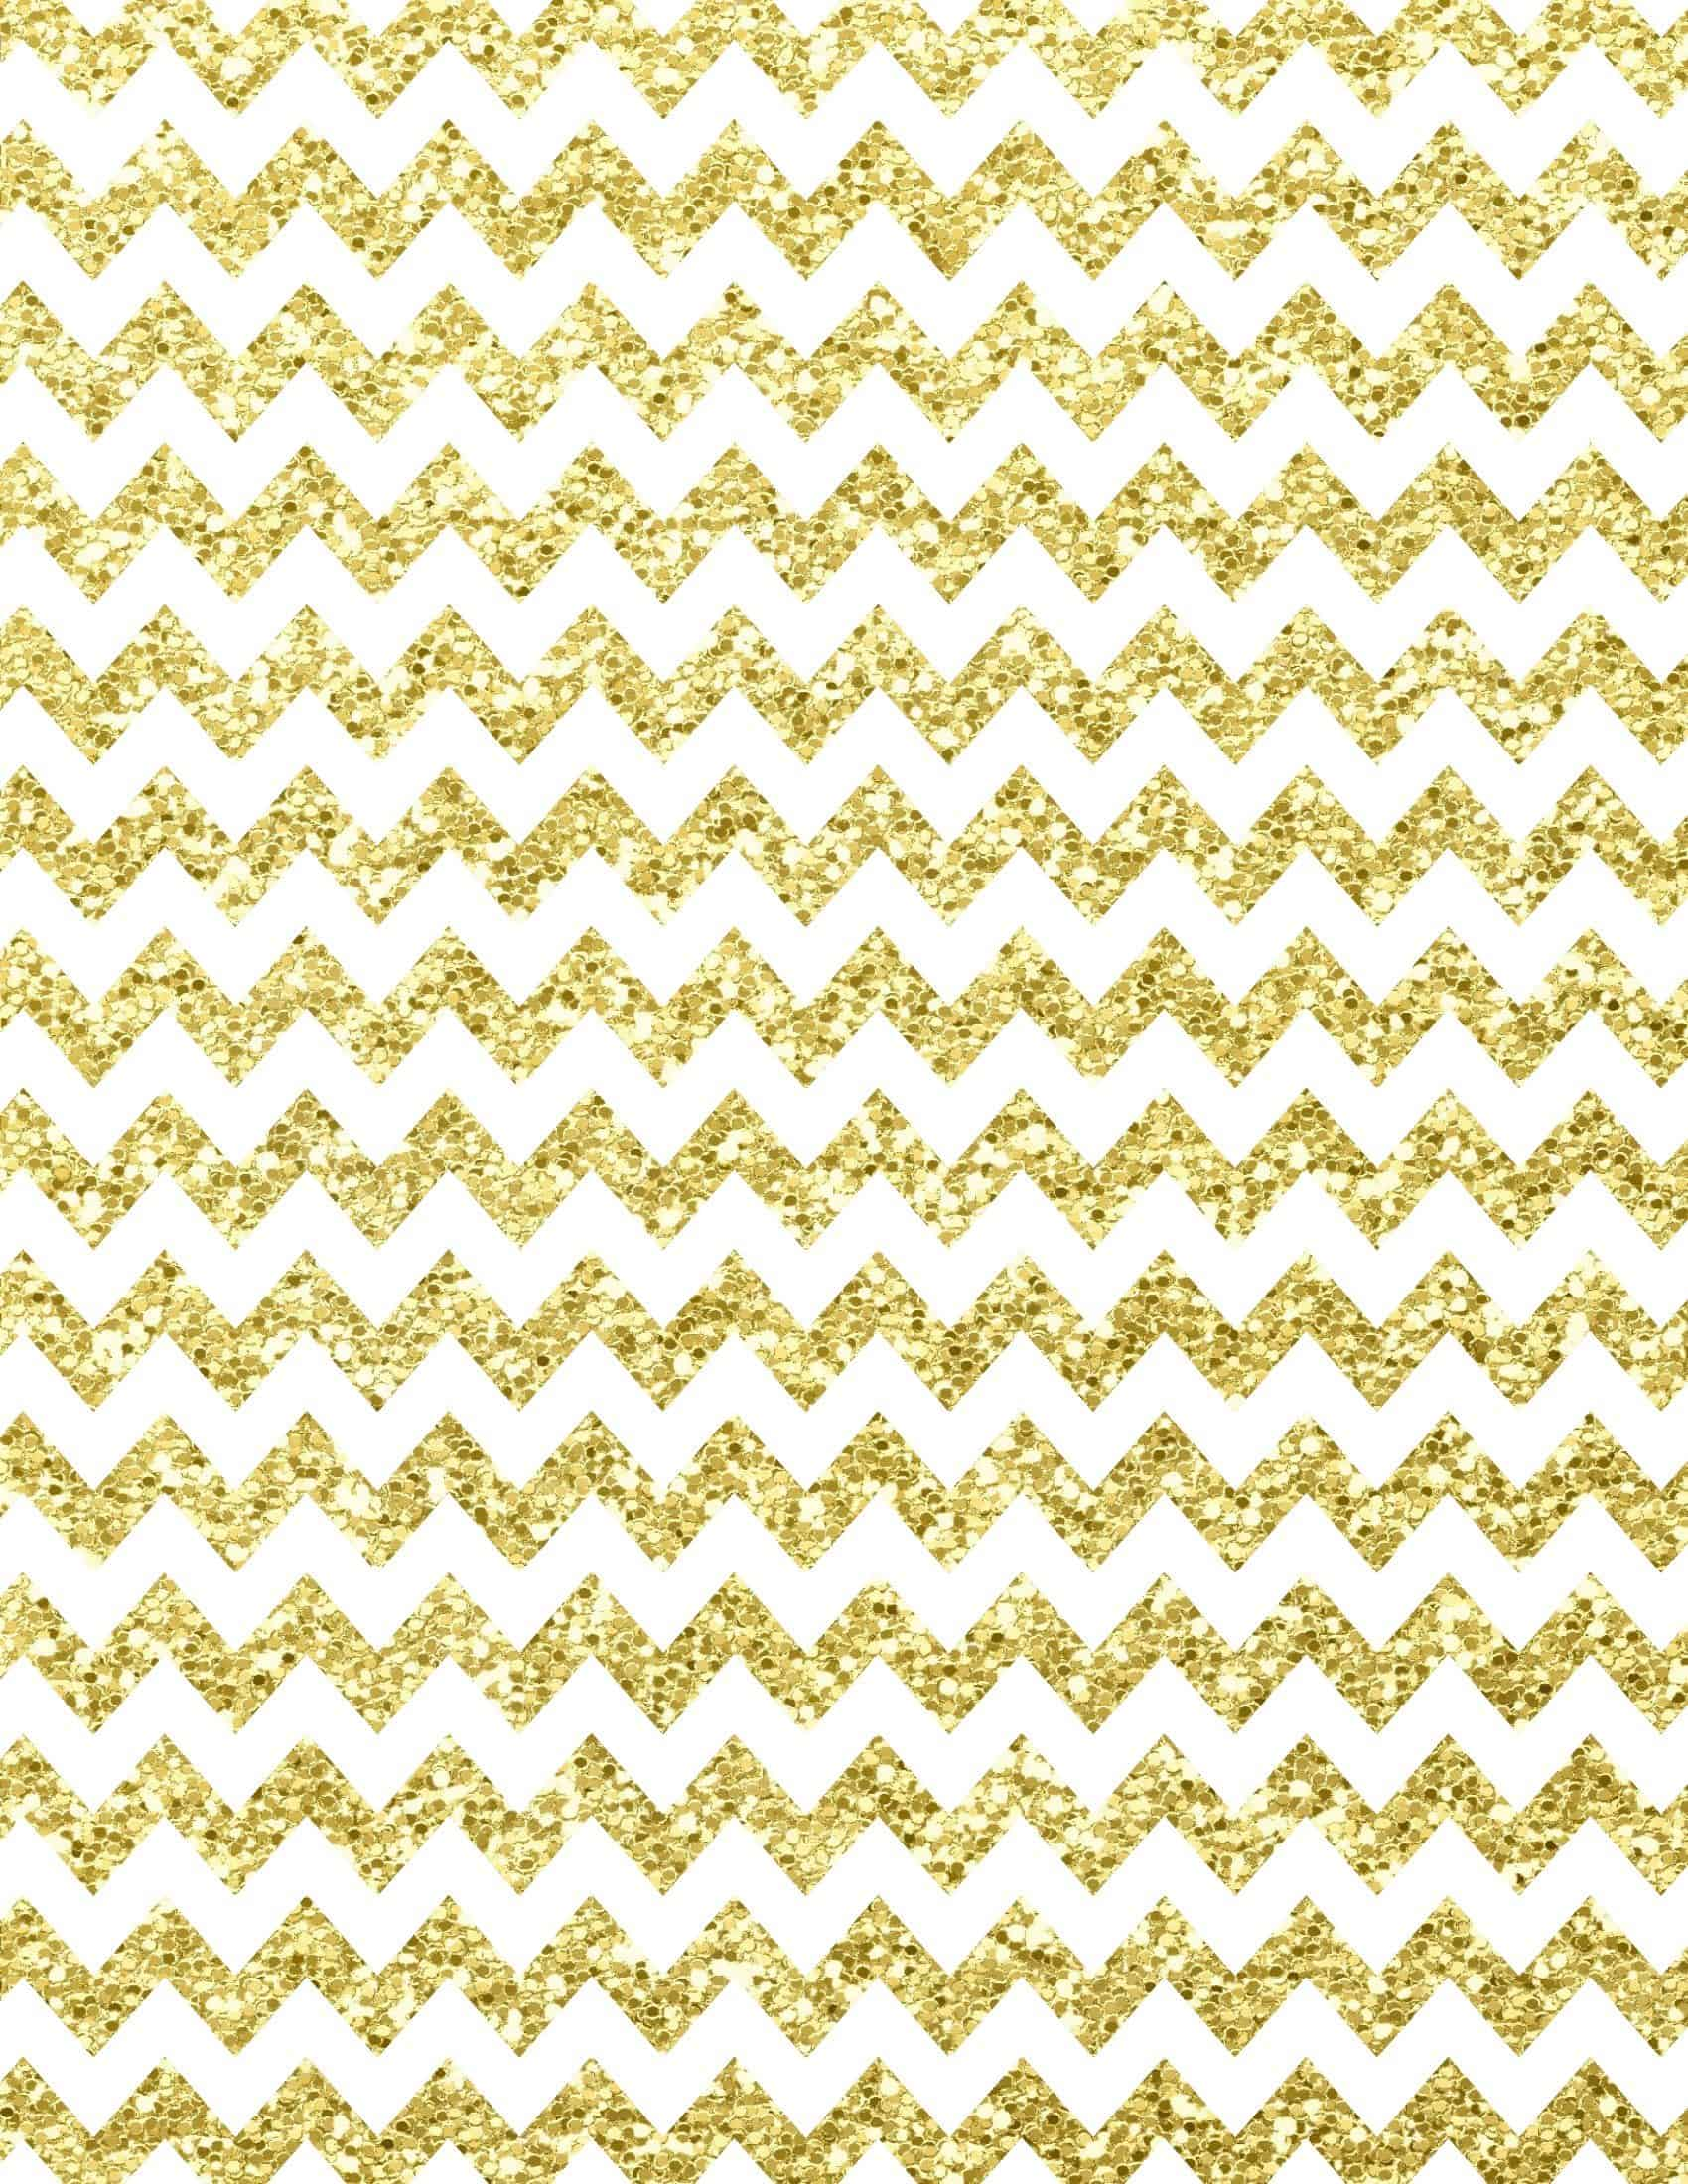 Gold and white chevron print